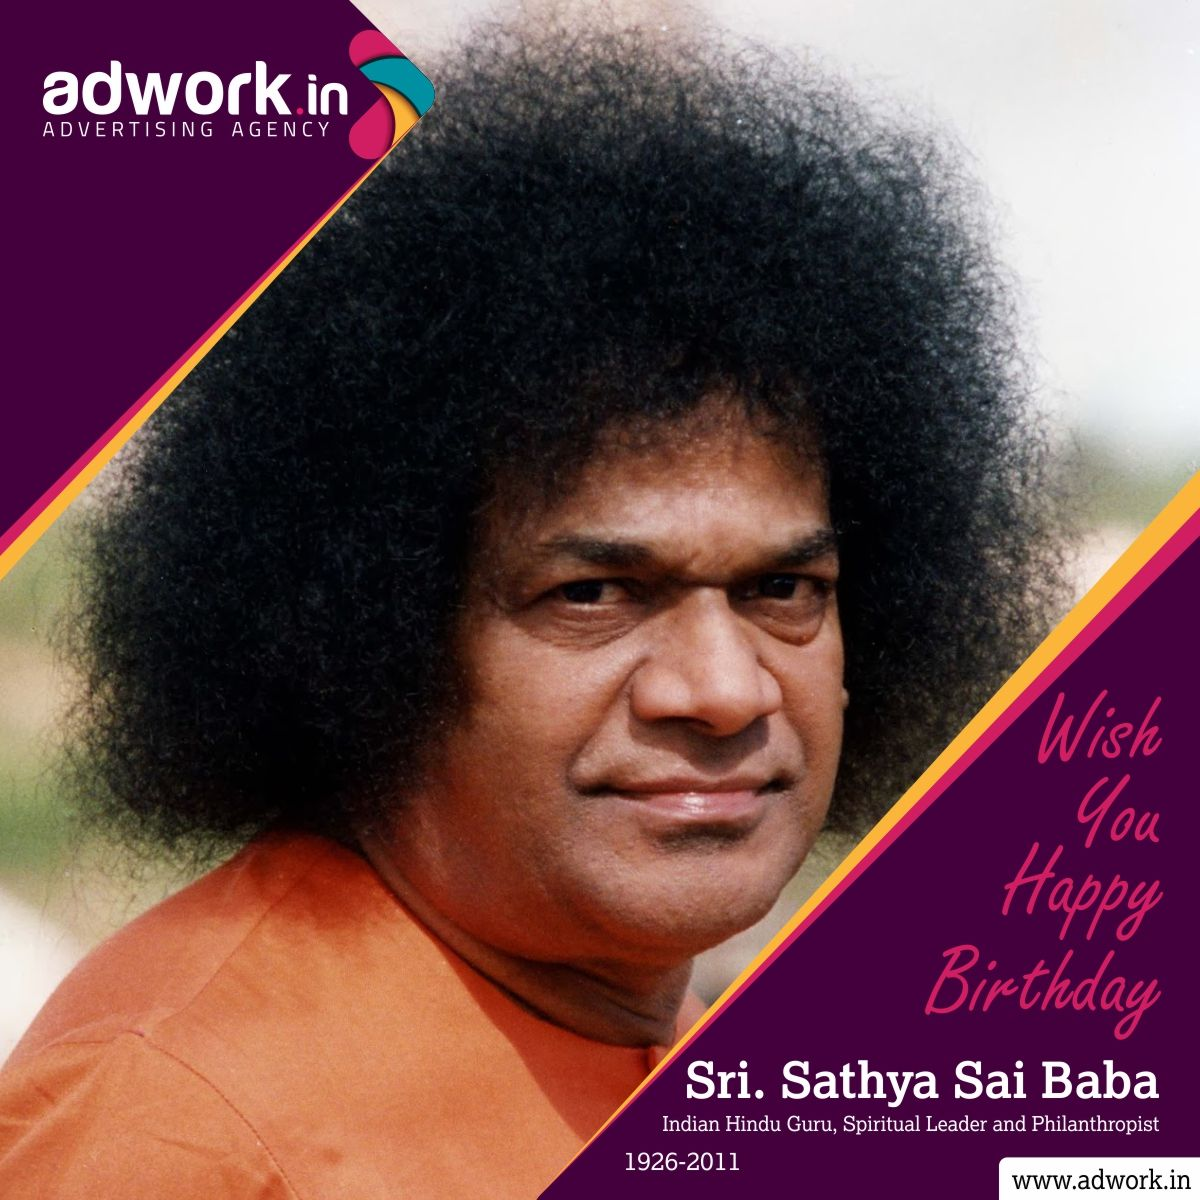 Pin by Adwork Advertising on Birthday in 2015 Wish you